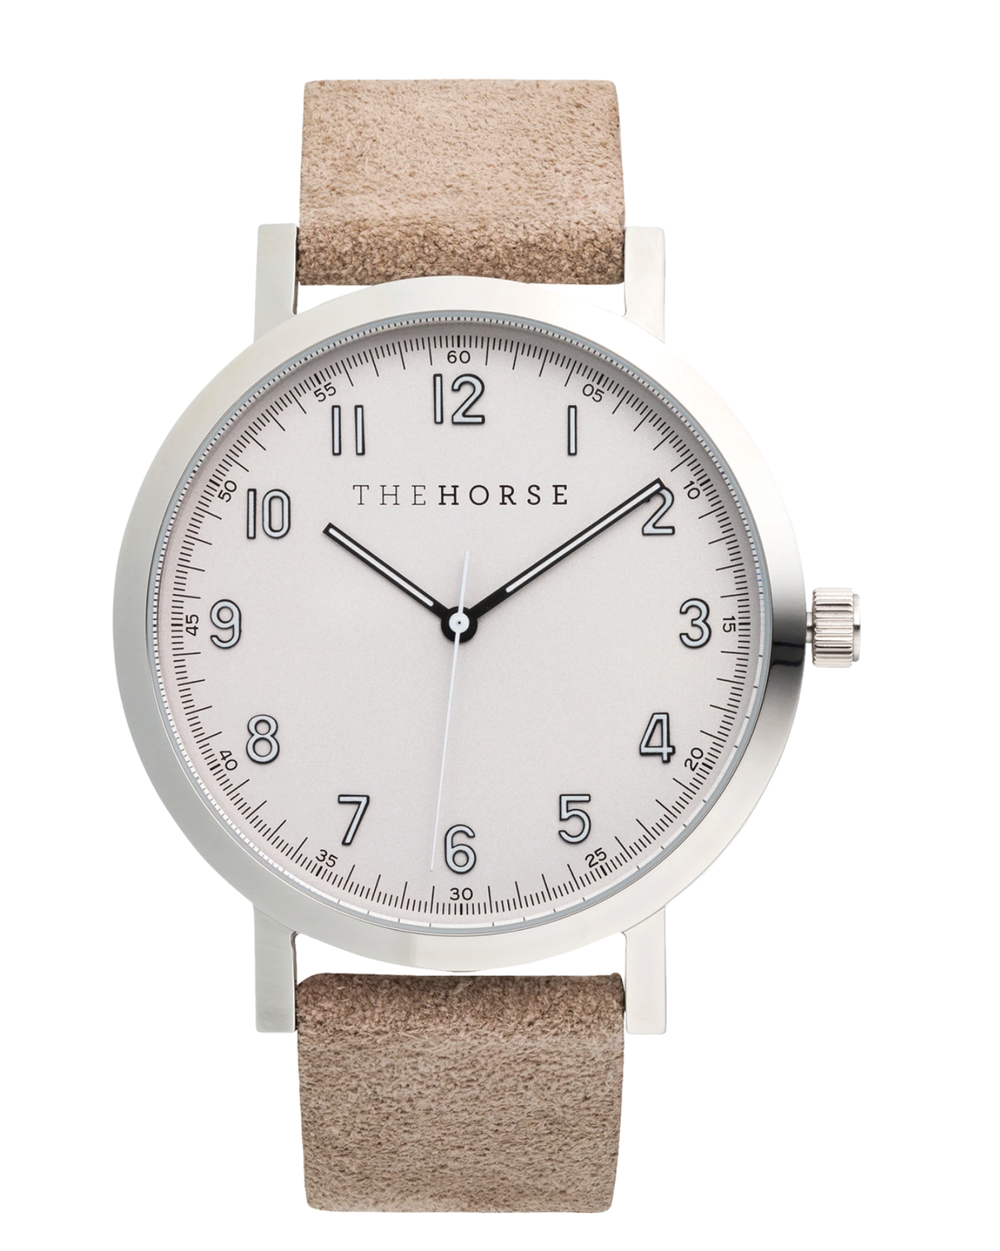 The Horse Original 2.0 Watch In Polished Silver / Bone Suede Leather Strap